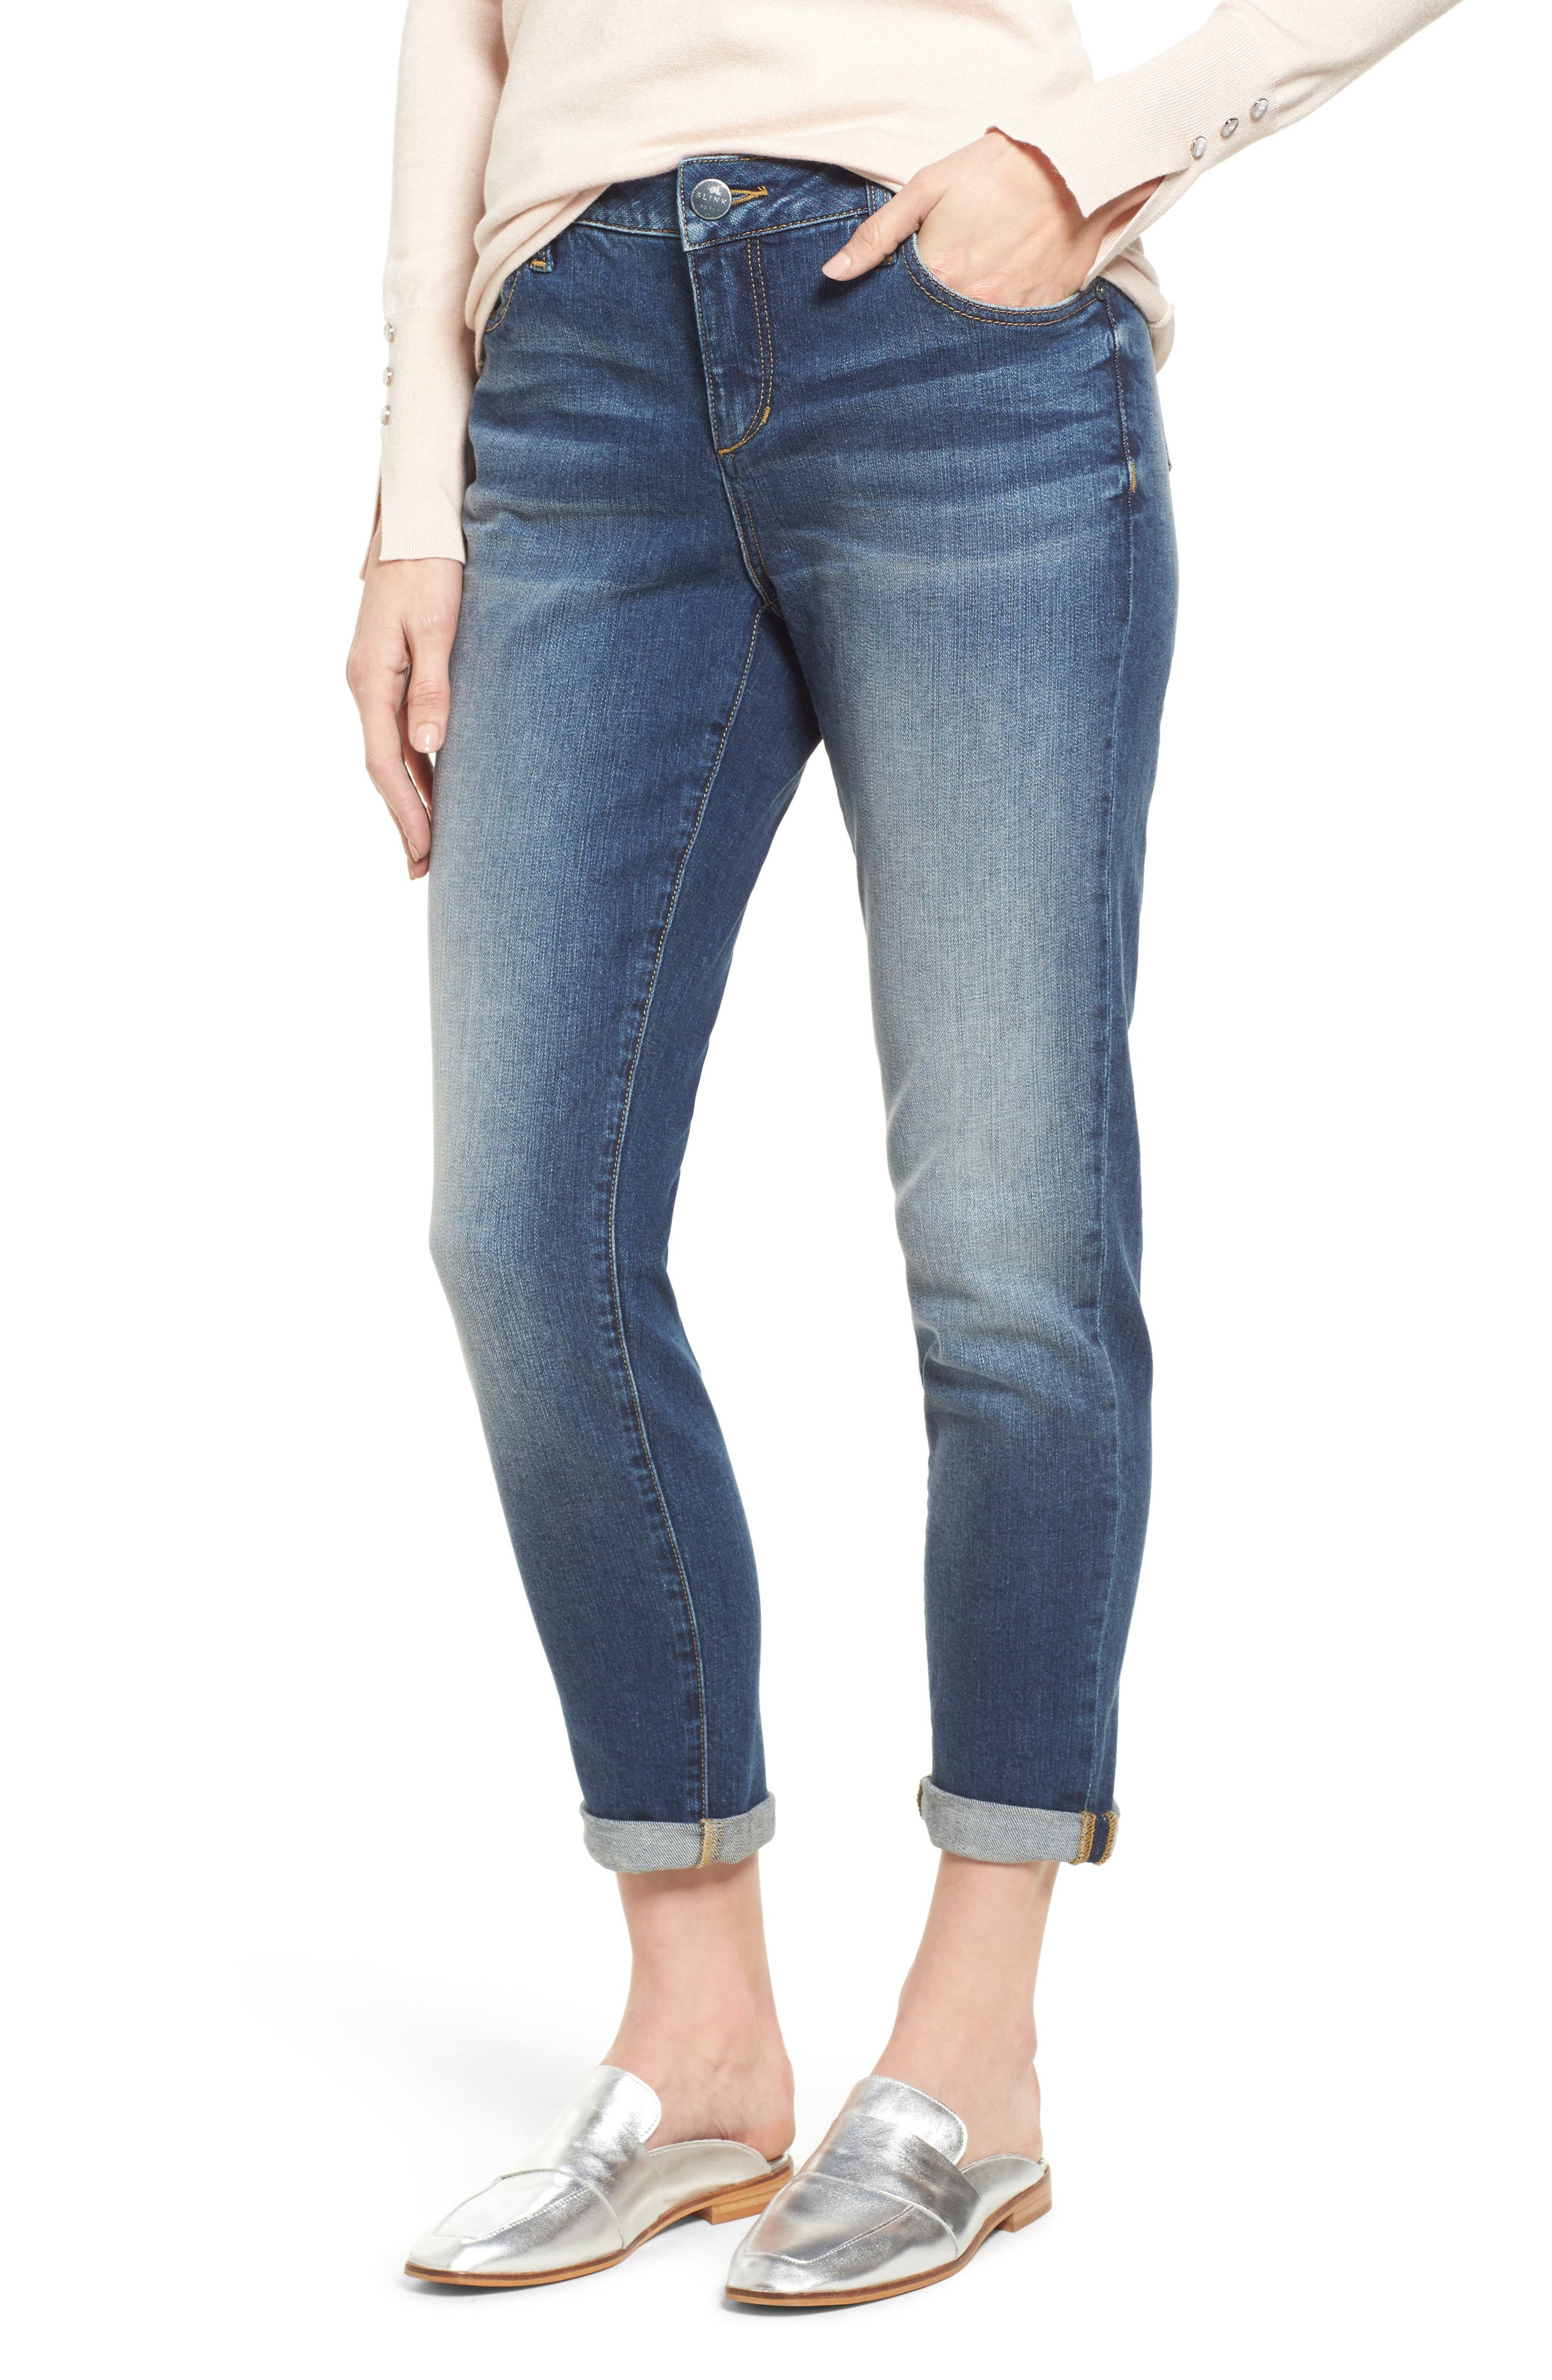 SLINK JEANS Rolled Boyfriend Jeans, Main, color, VAL